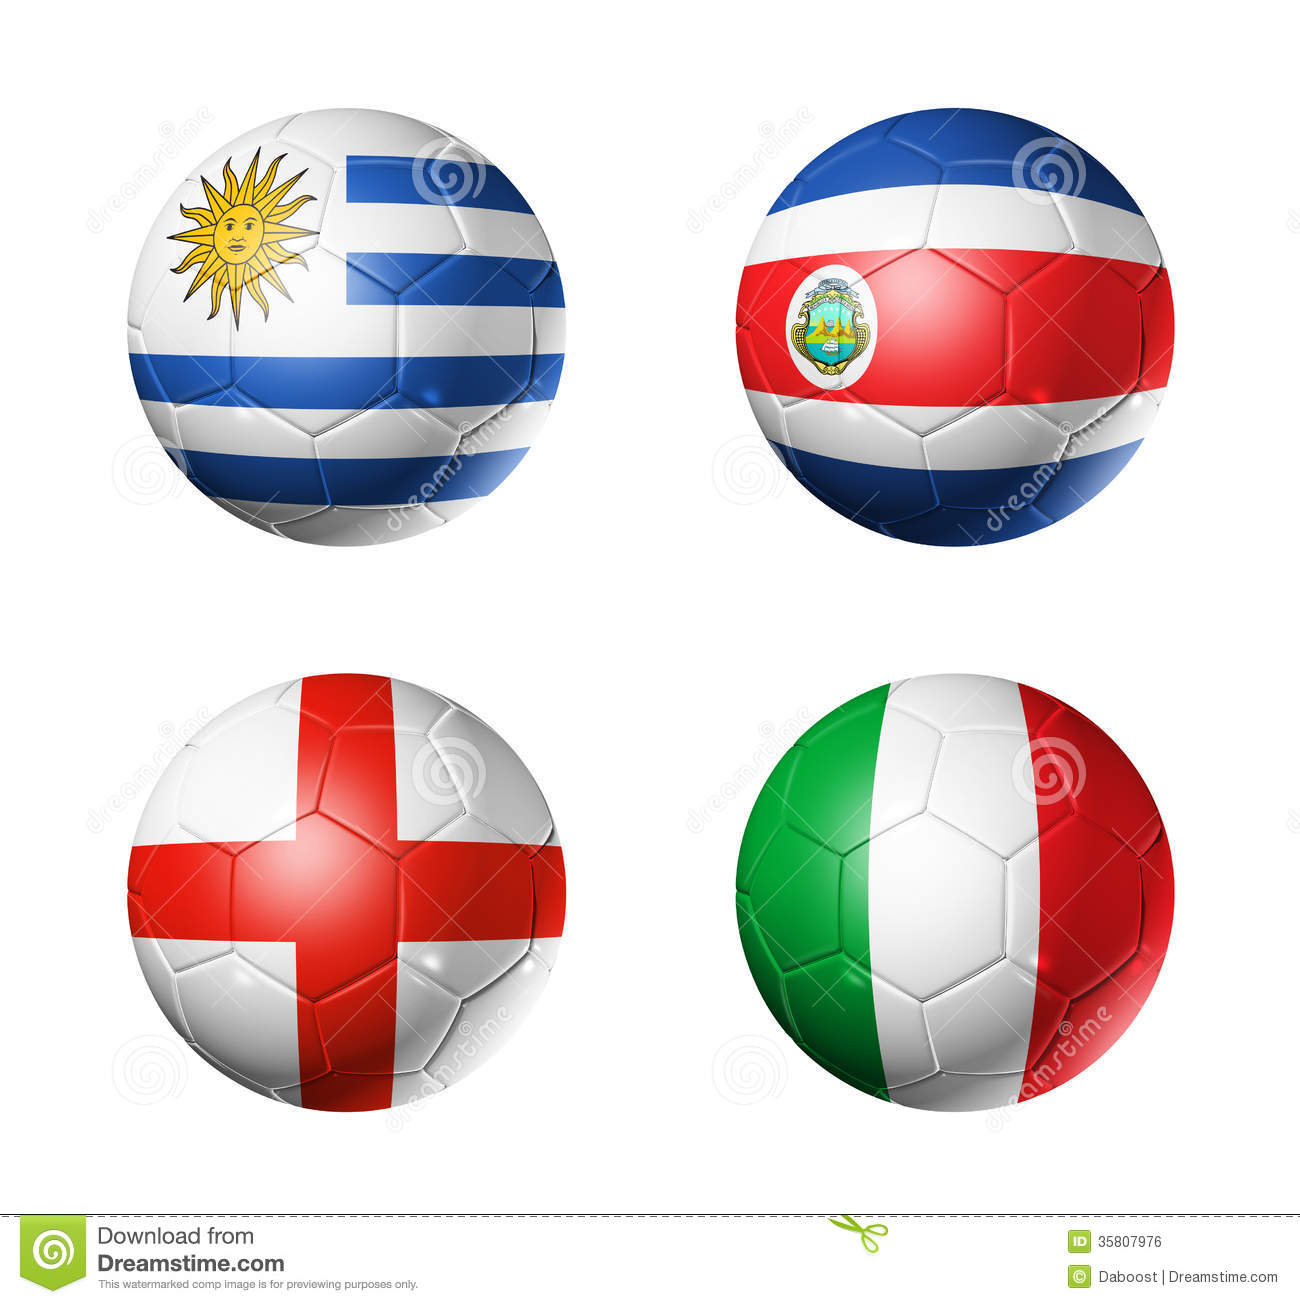 Brazil world cup 2014 group D flags on soccer ball